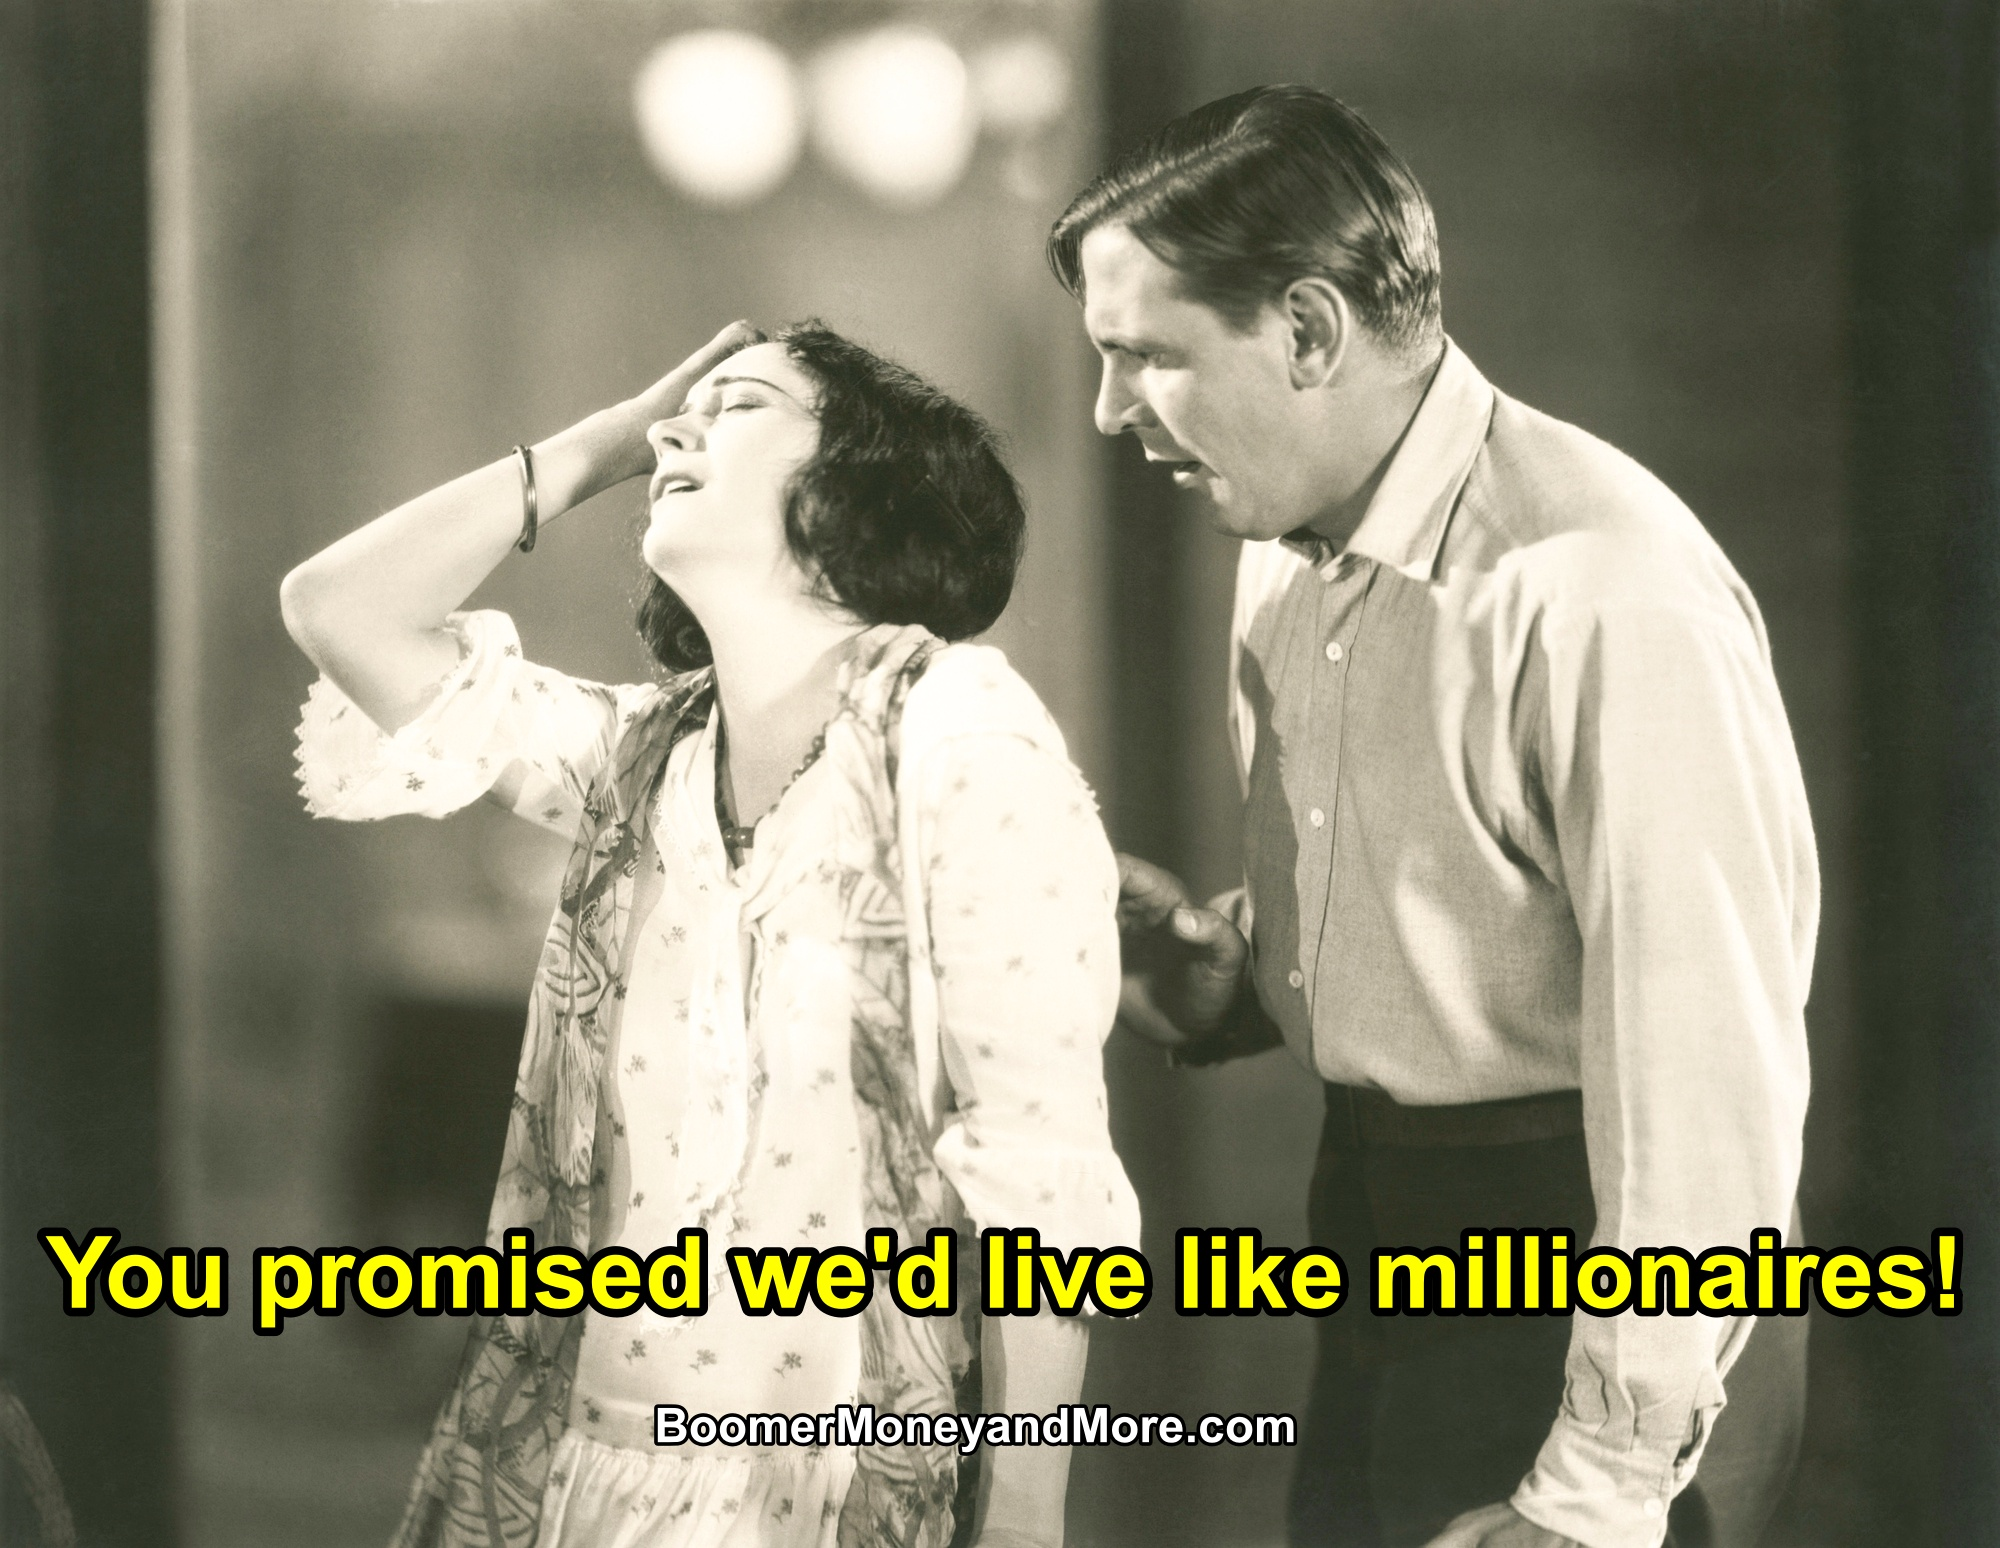 Black and white retro photo of distraught woman decrying that she and her husband, who is standing behind her, don't have millionaire lifestyles.